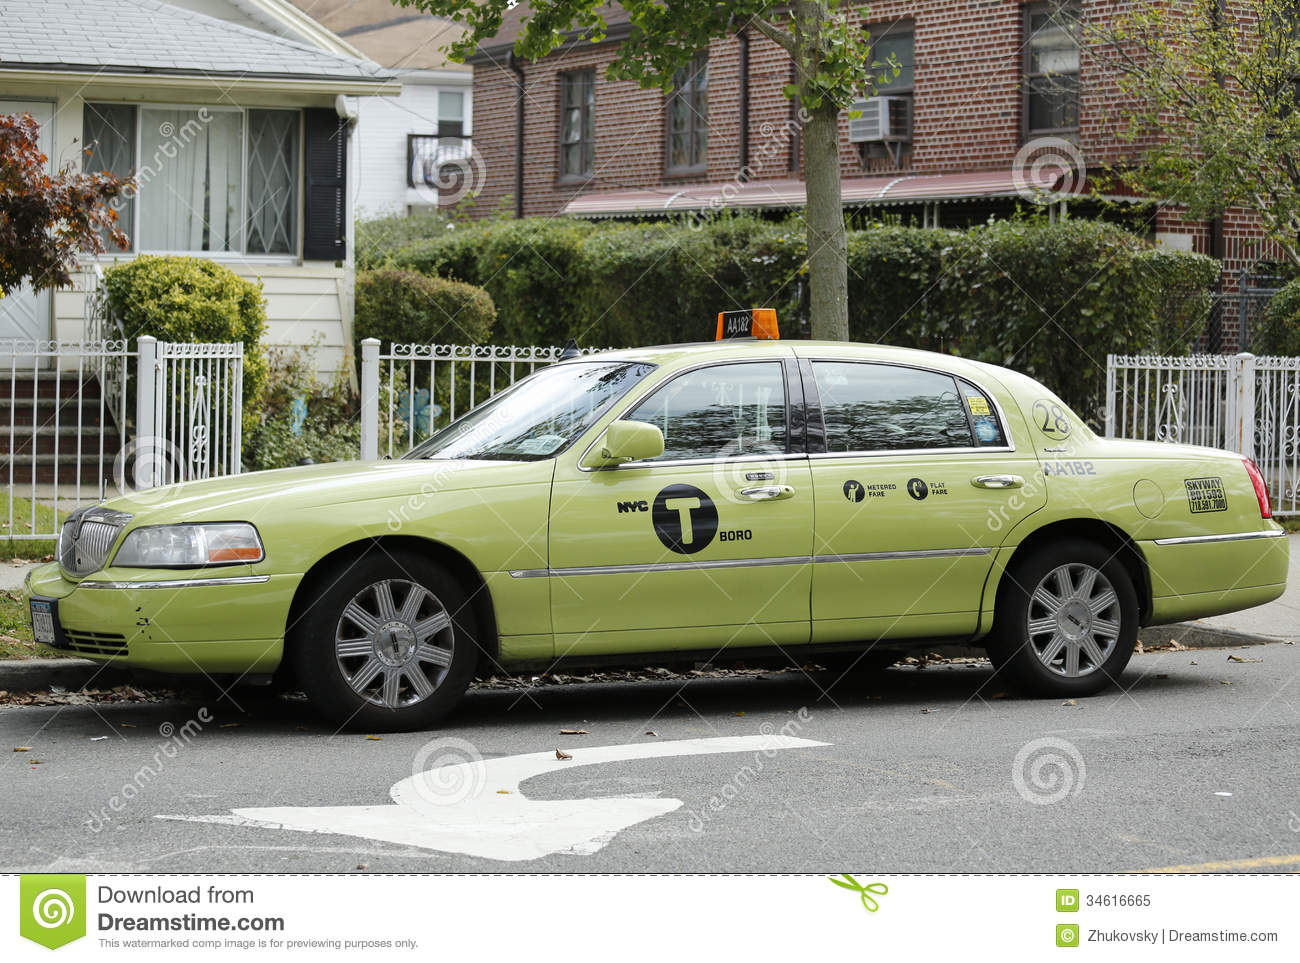 New Green Colored Boro Taxi In York Editorial Image Of Lincoln Town Car